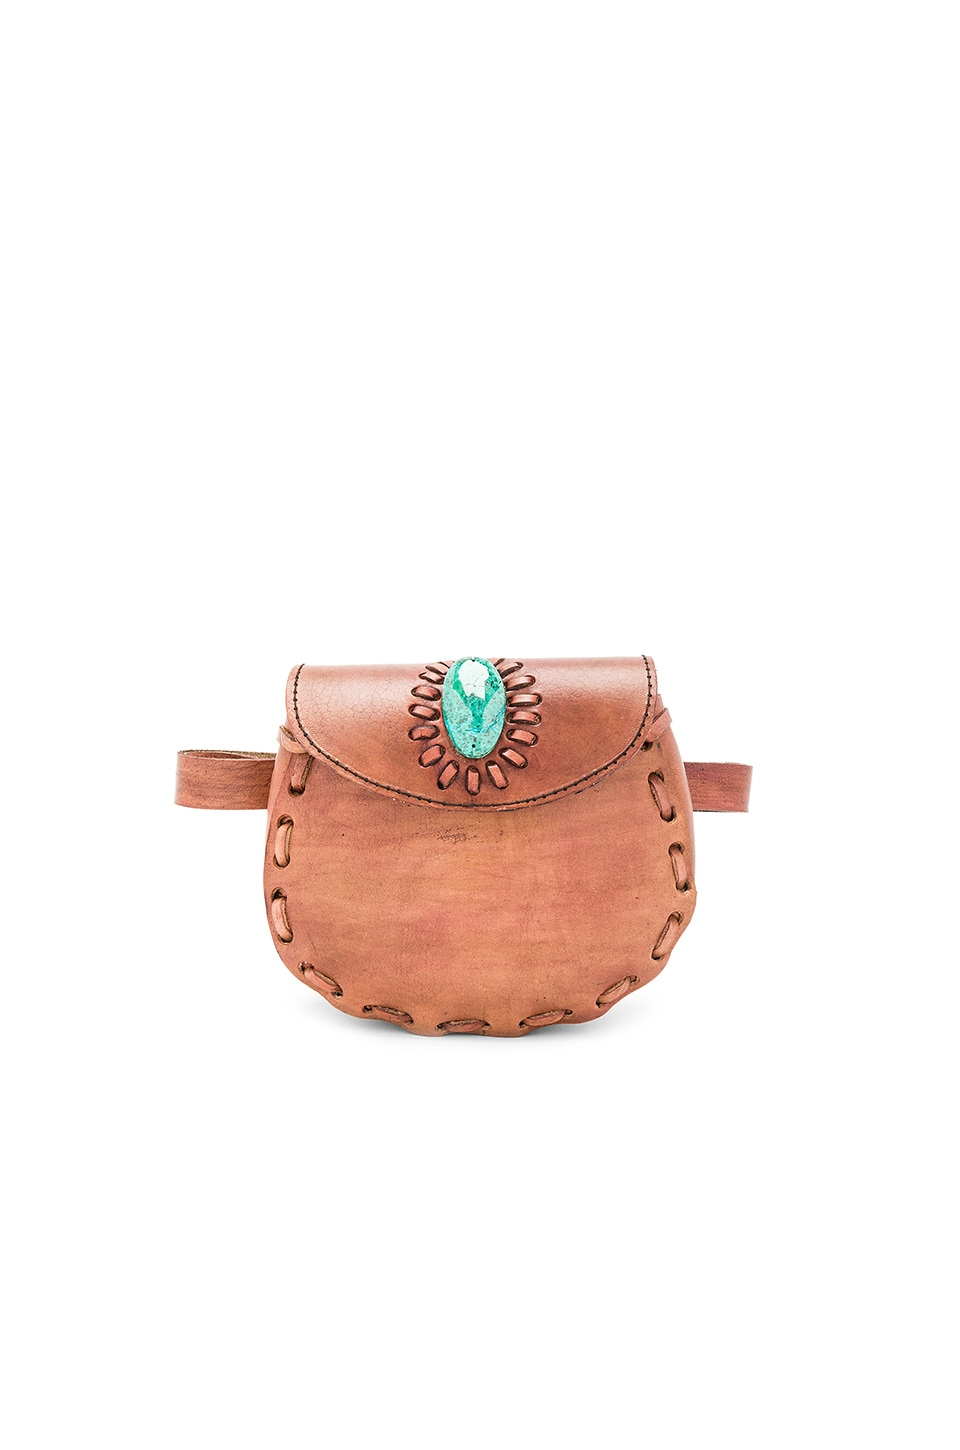 Pamela V. Darlene Fannypack With Turquoise in Brown